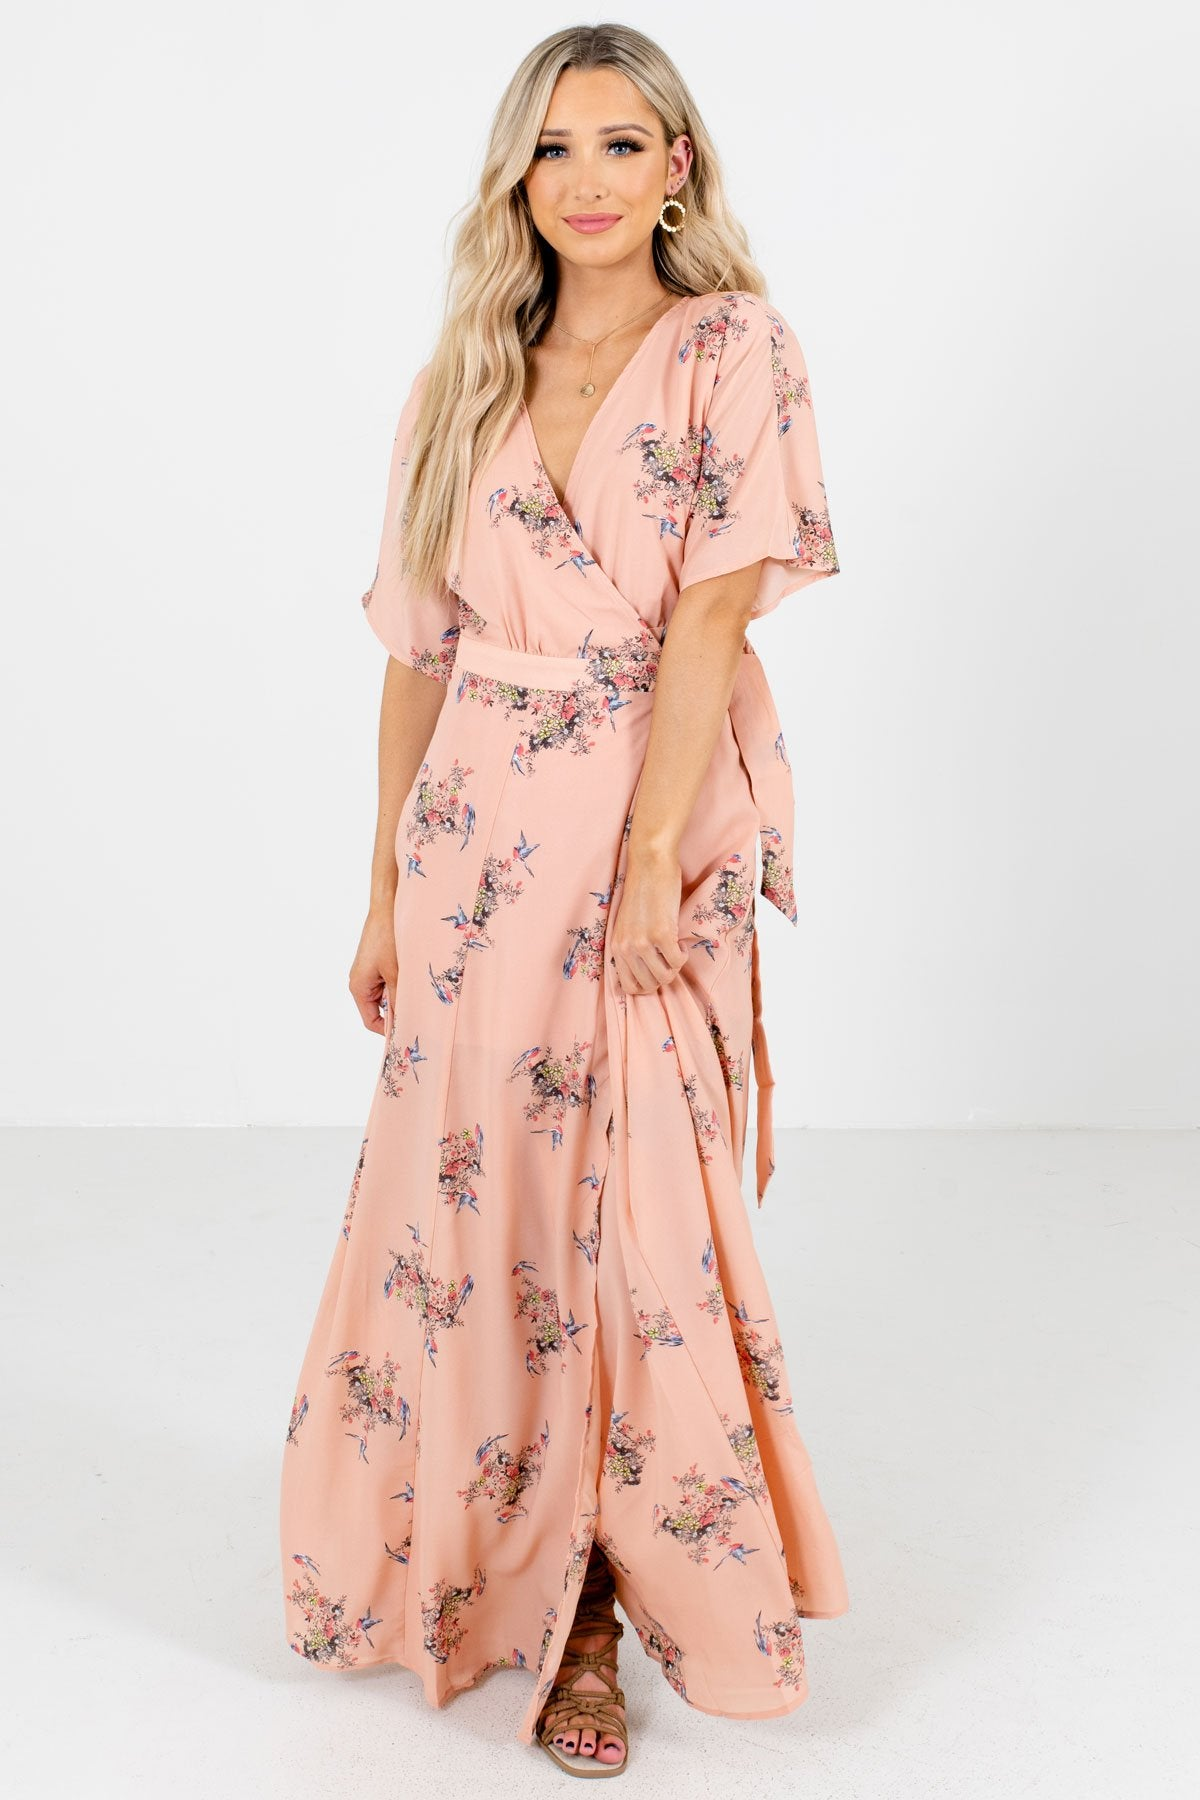 Peach Pink Floral Patterned Boutique Maxi Dresses for Women